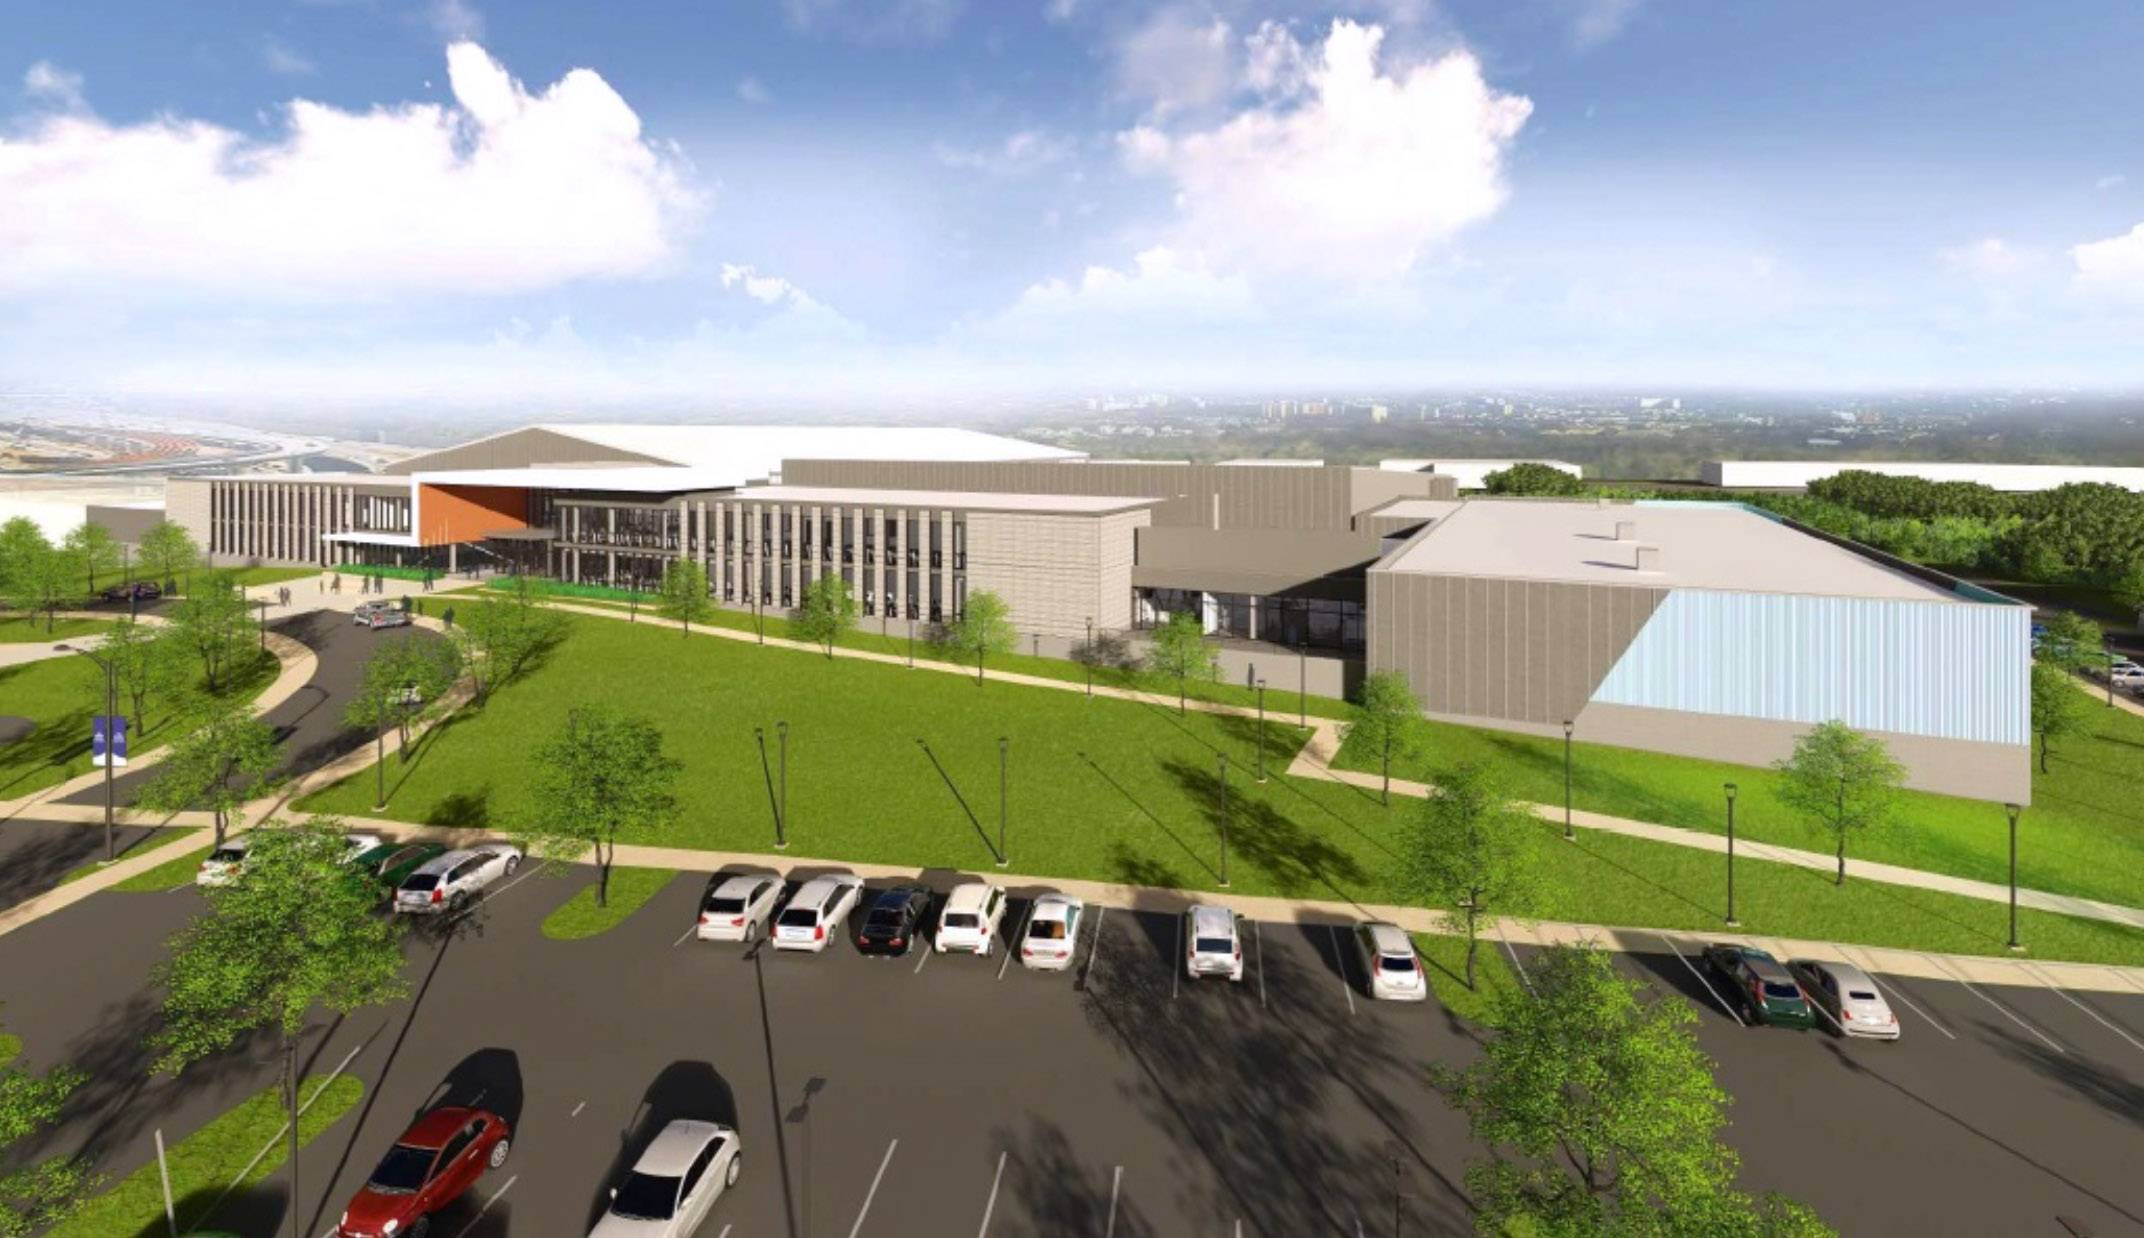 Rendering of the proposed health and wellness center in Lincolnshire.